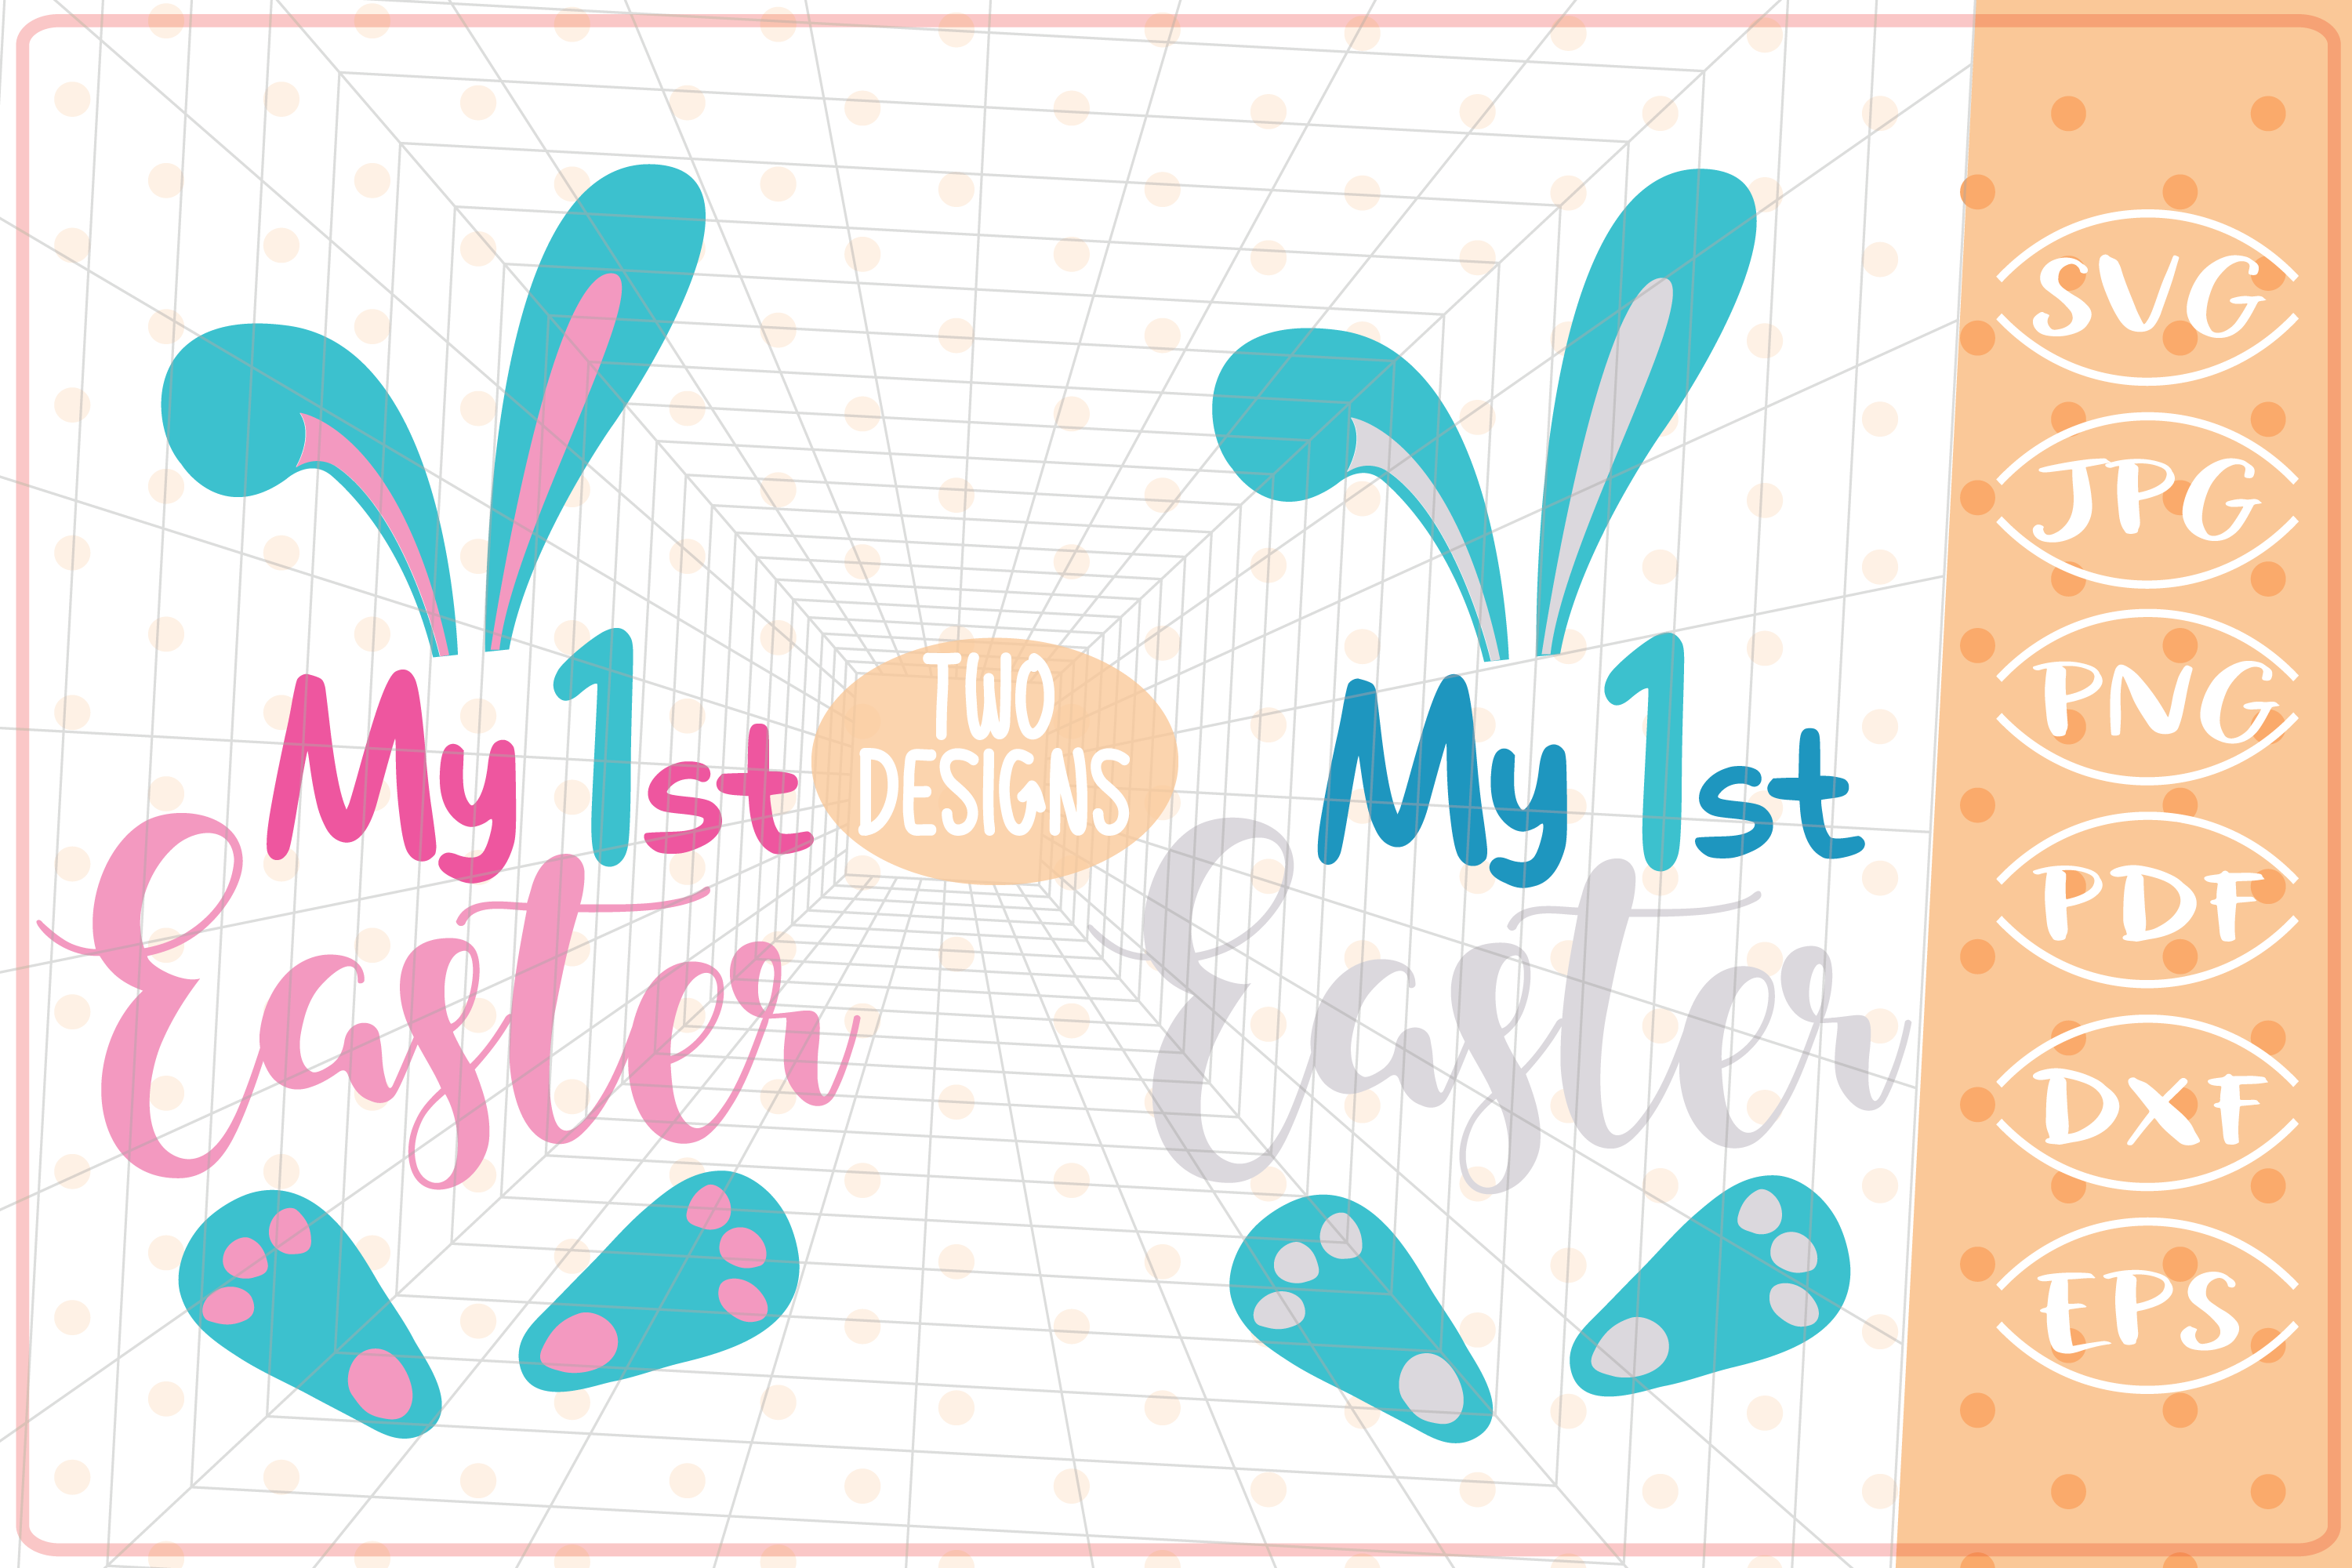 Download Free My First Easter 2 Designs Girl Boy Graphic By Cute Graphic for Cricut Explore, Silhouette and other cutting machines.